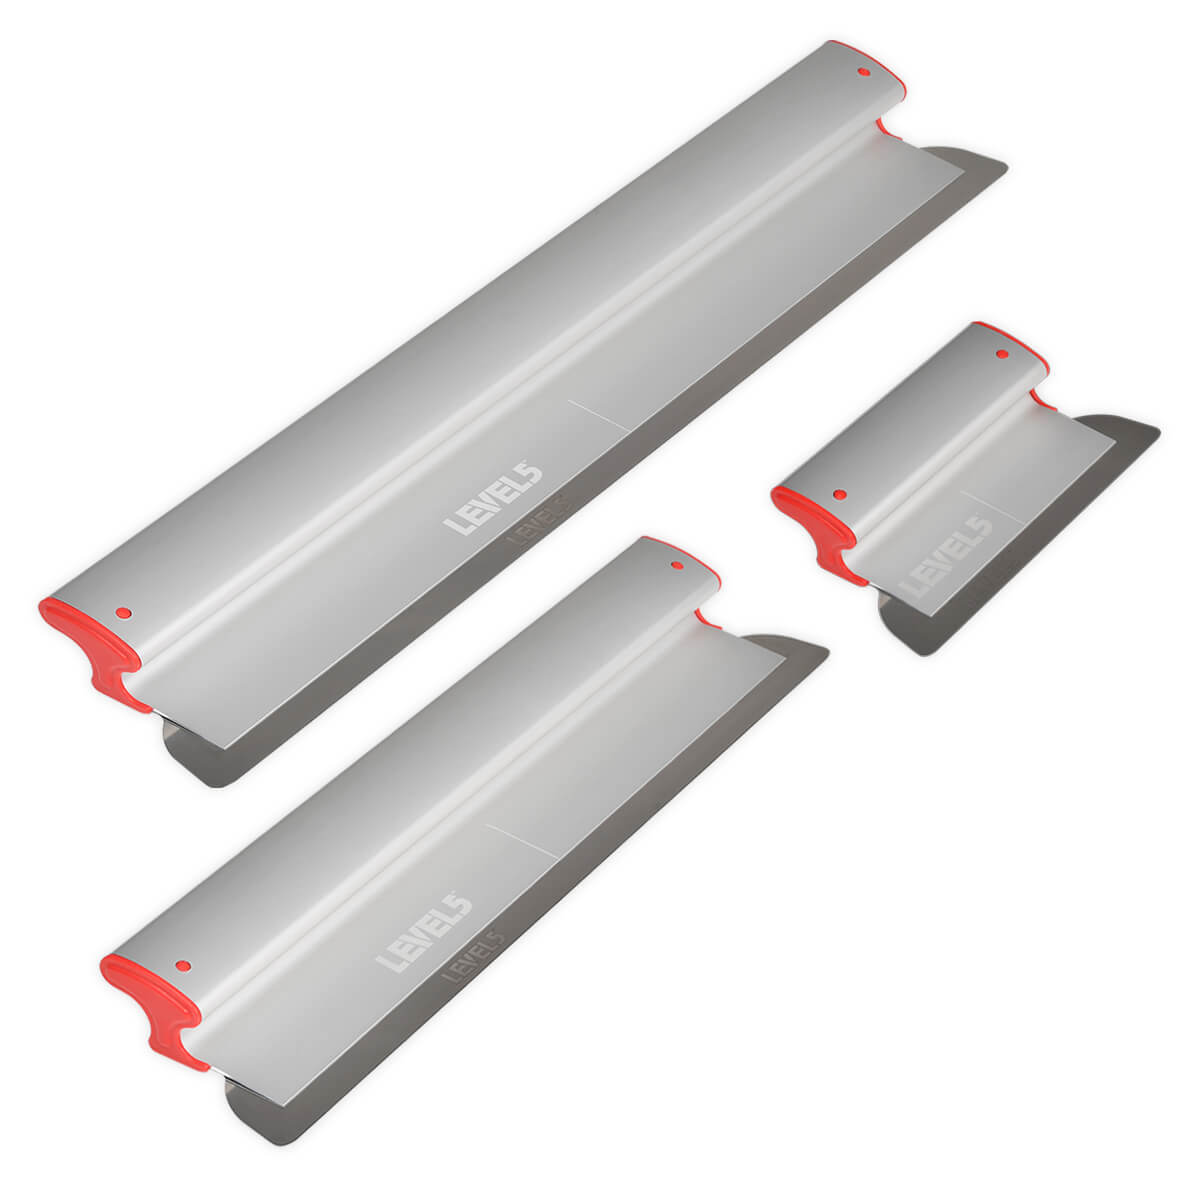 LEVEL5 Drywall Skimming Blade Set | 10/24/32 Inch Blades | 5-444